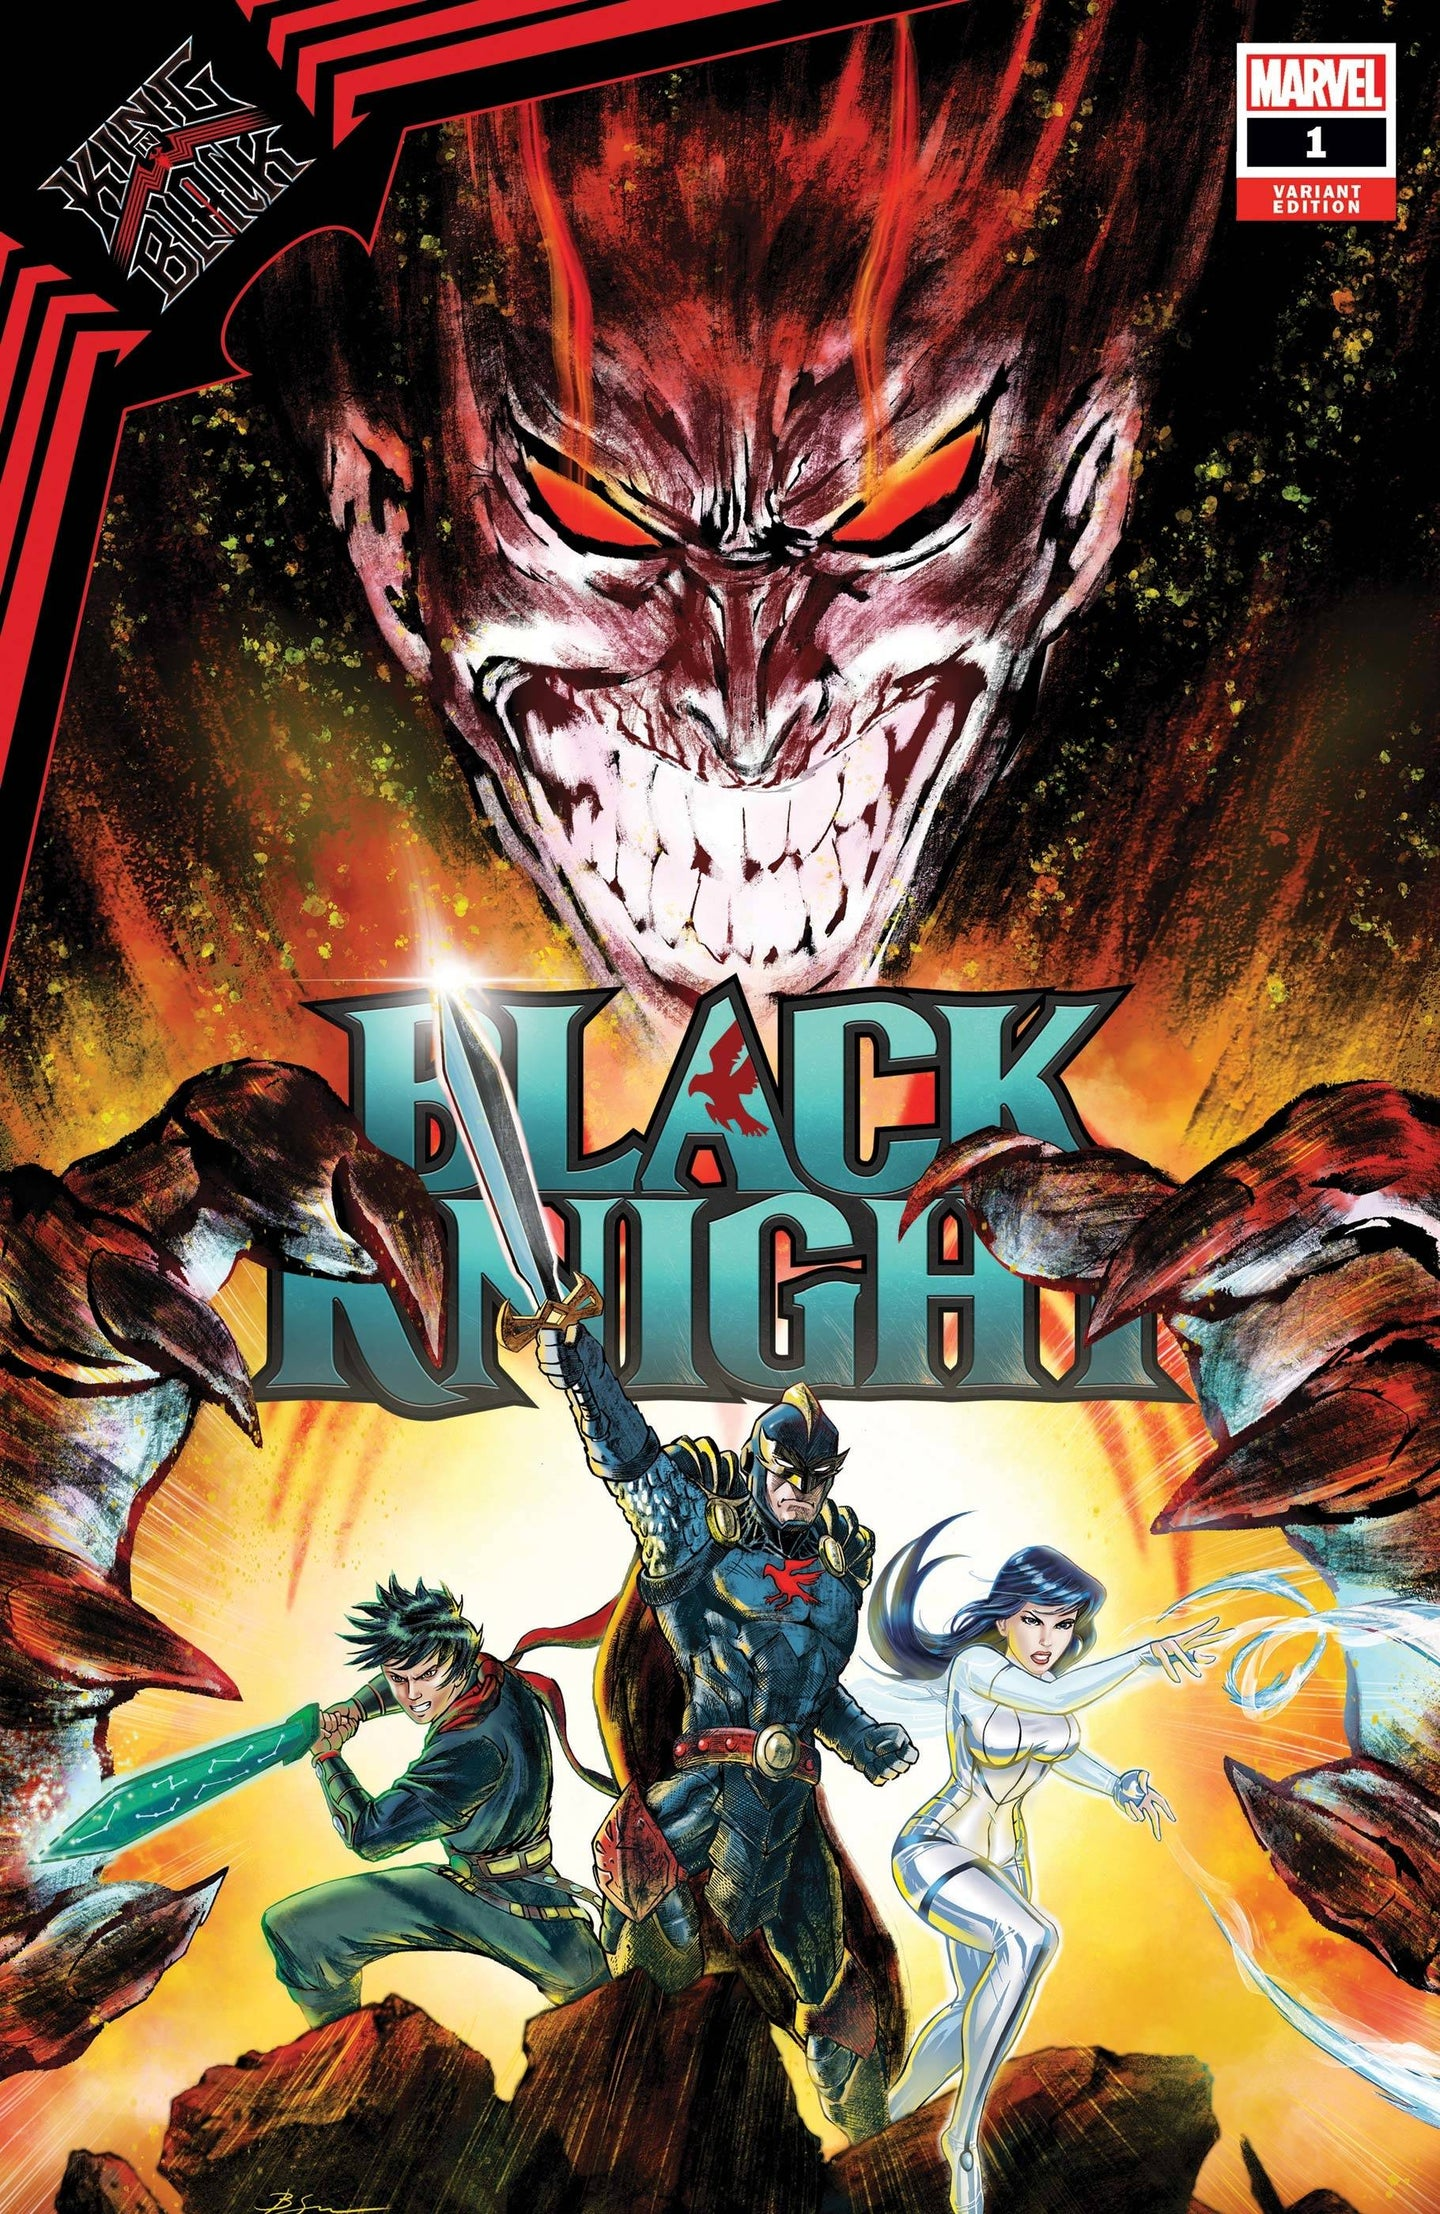 ^KING IN BLACK BLACK KNIGHT #1 SU VAR